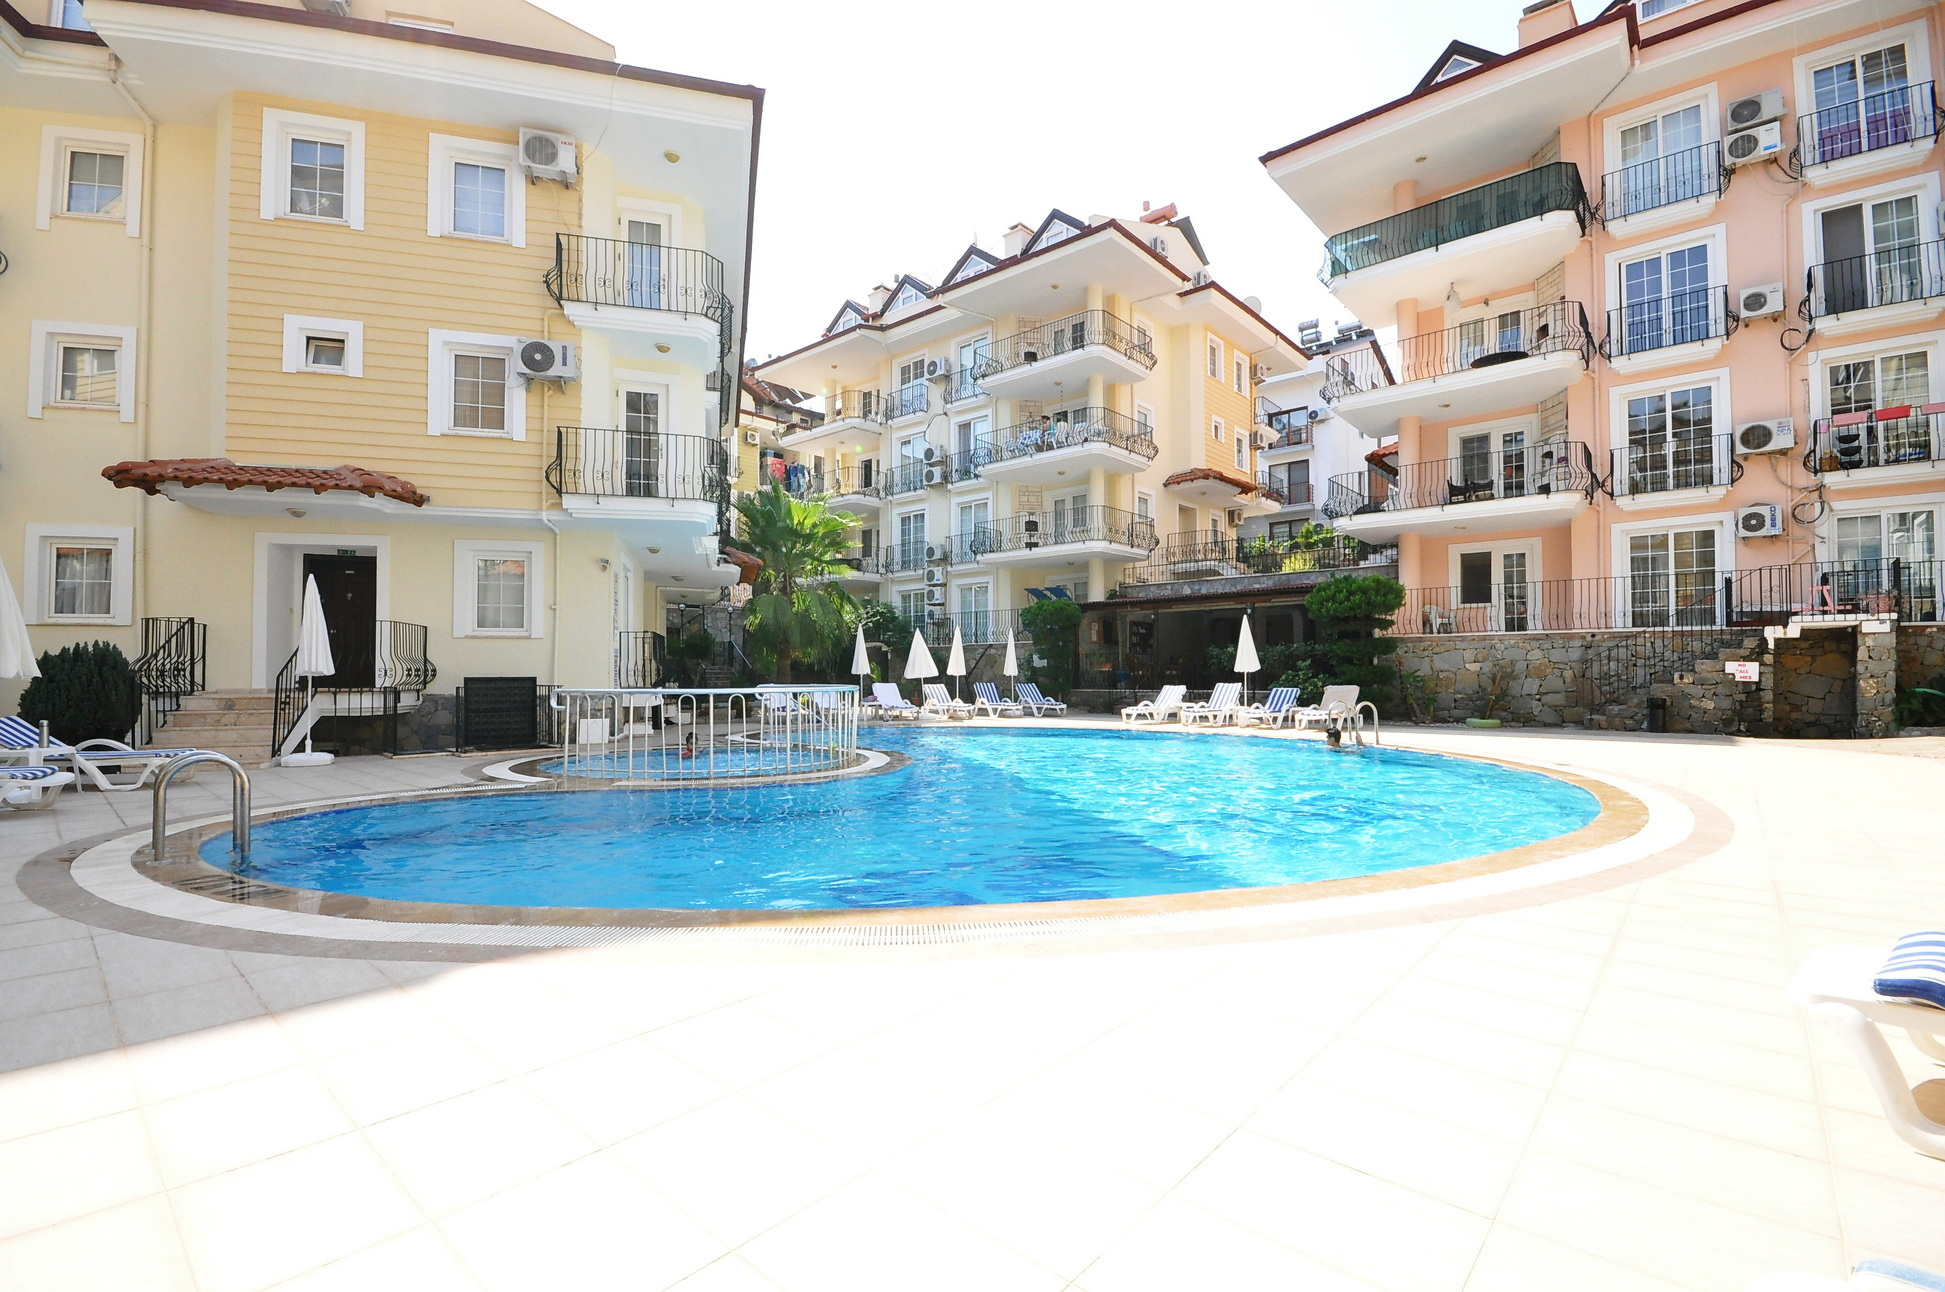 Lovely 2 Bedroom Apartment with Large Communal Pool located in Deliktas